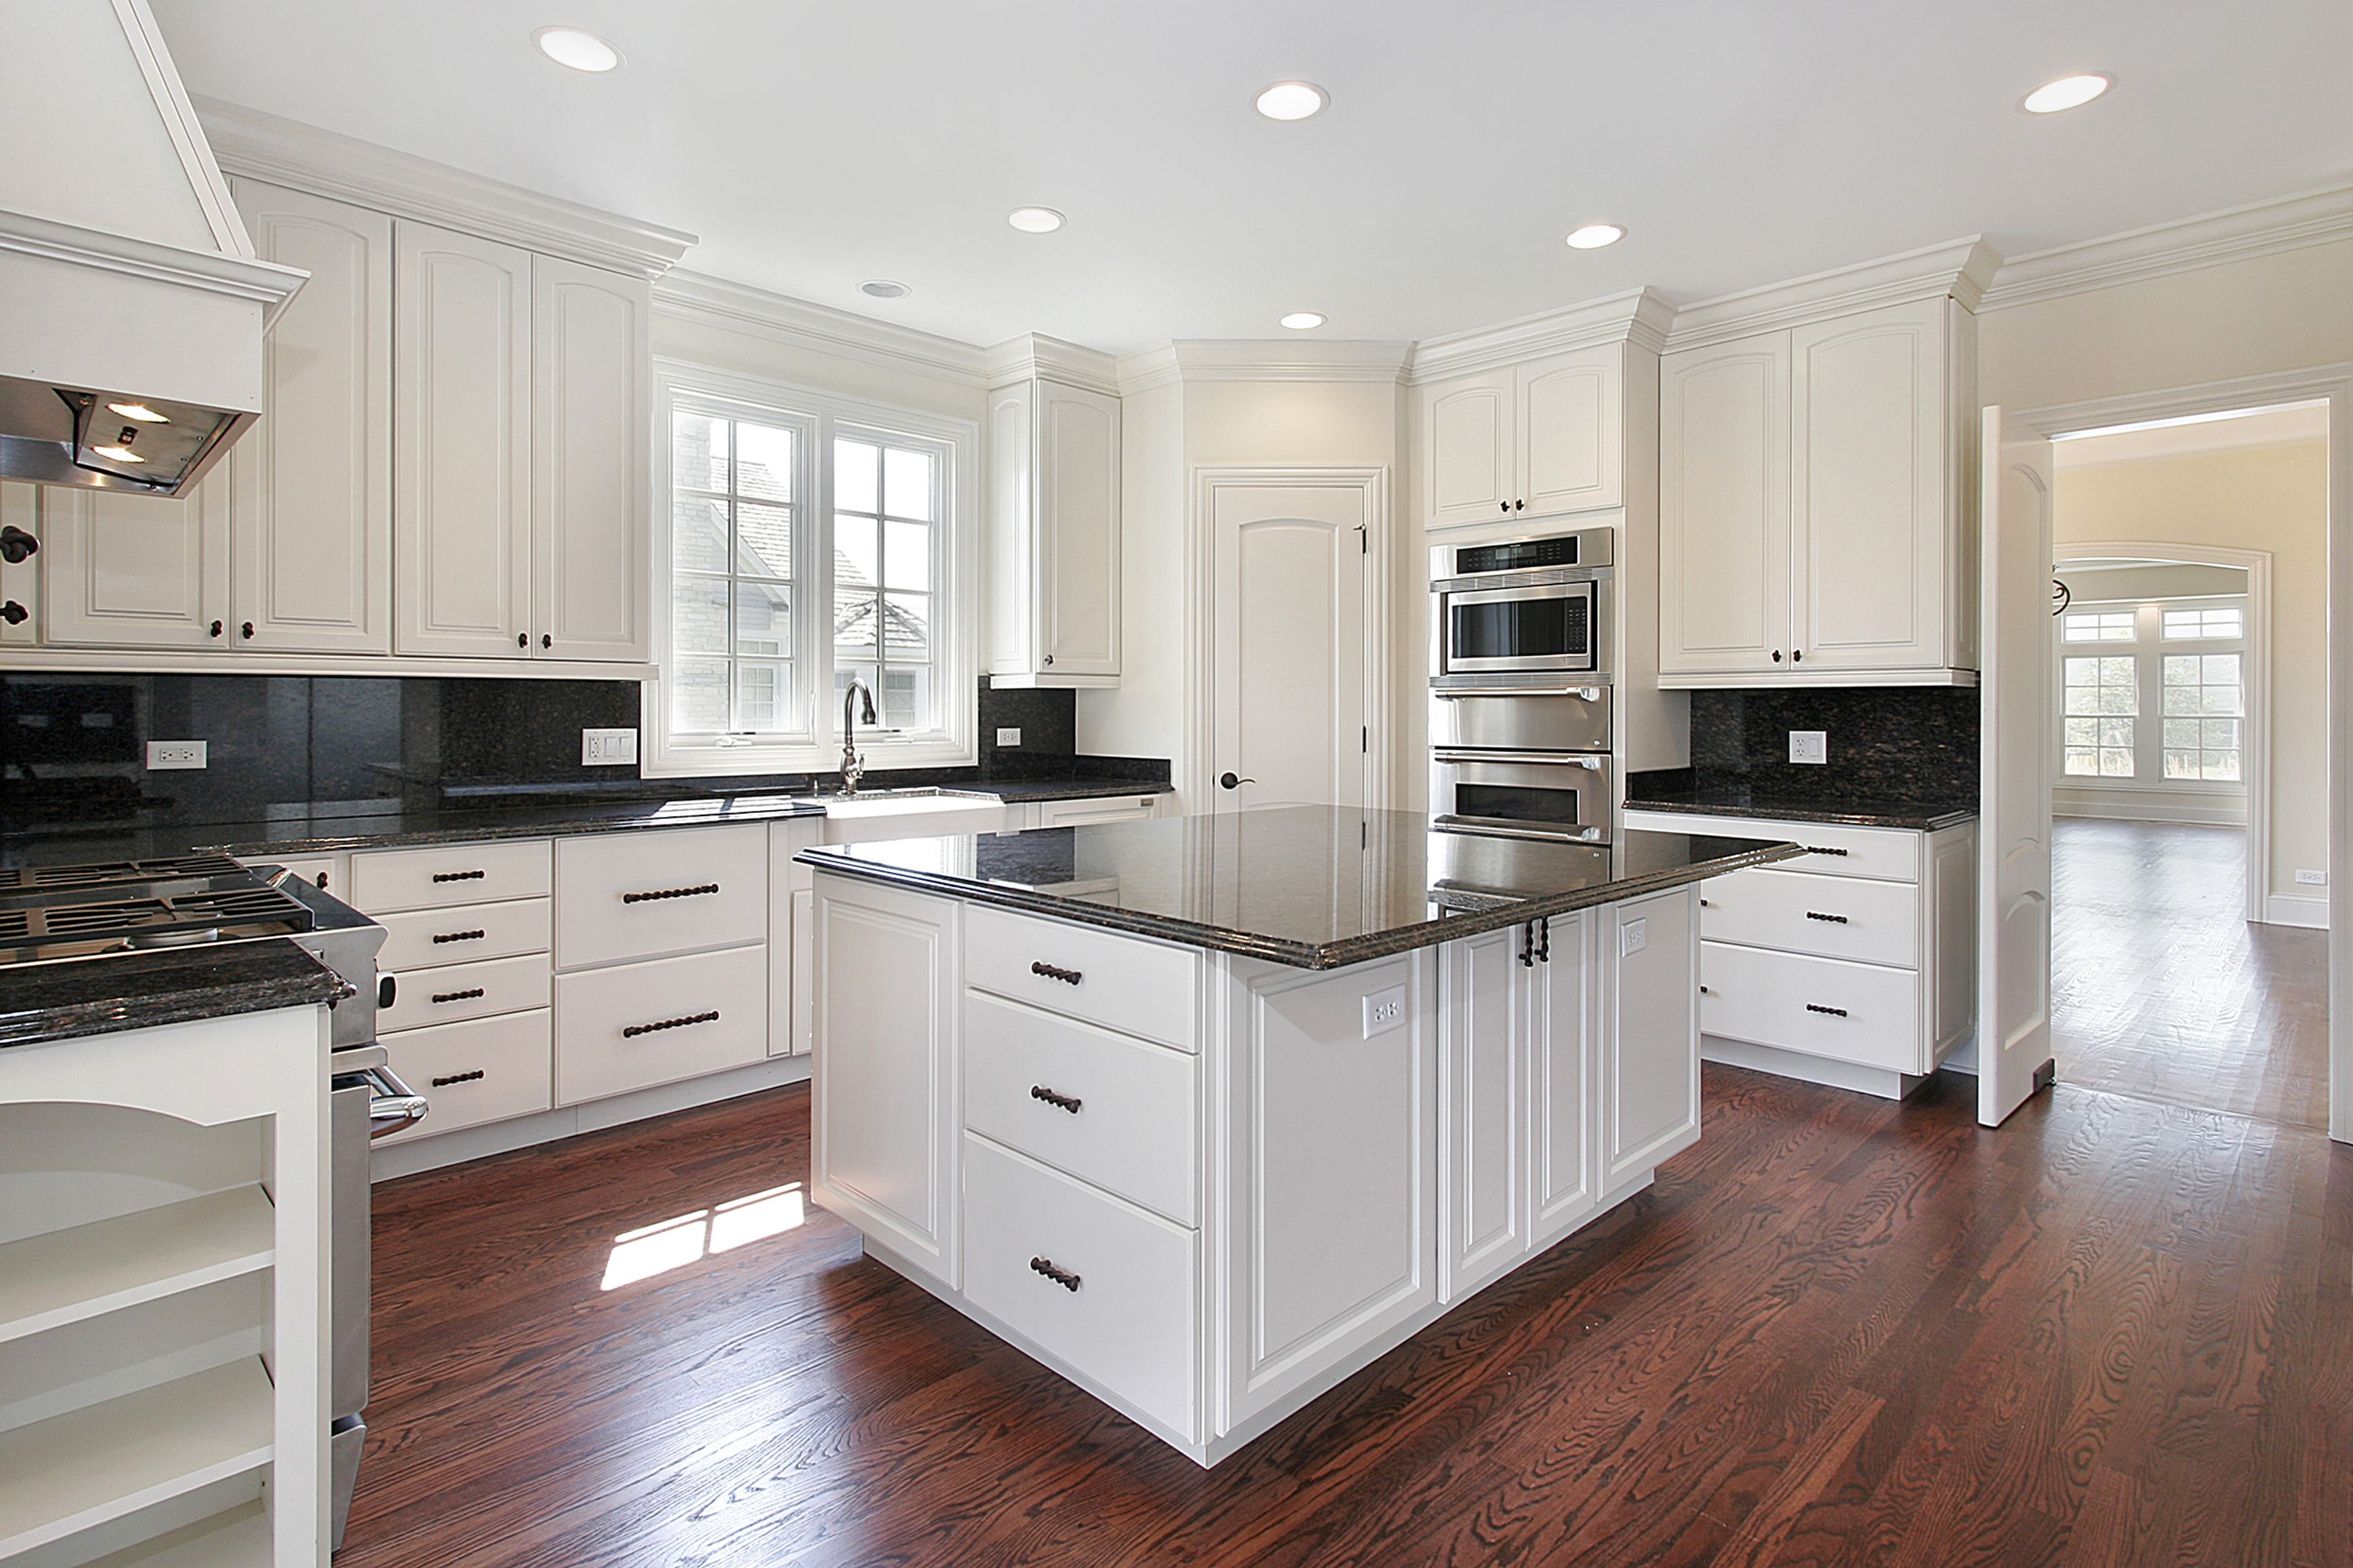 Traditional Kitchen Ghost White Cabinets With Granite Counter Top And Back Splash Luxury Kitchen Design Cost Of Kitchen Cabinets Refacing Kitchen Cabinets